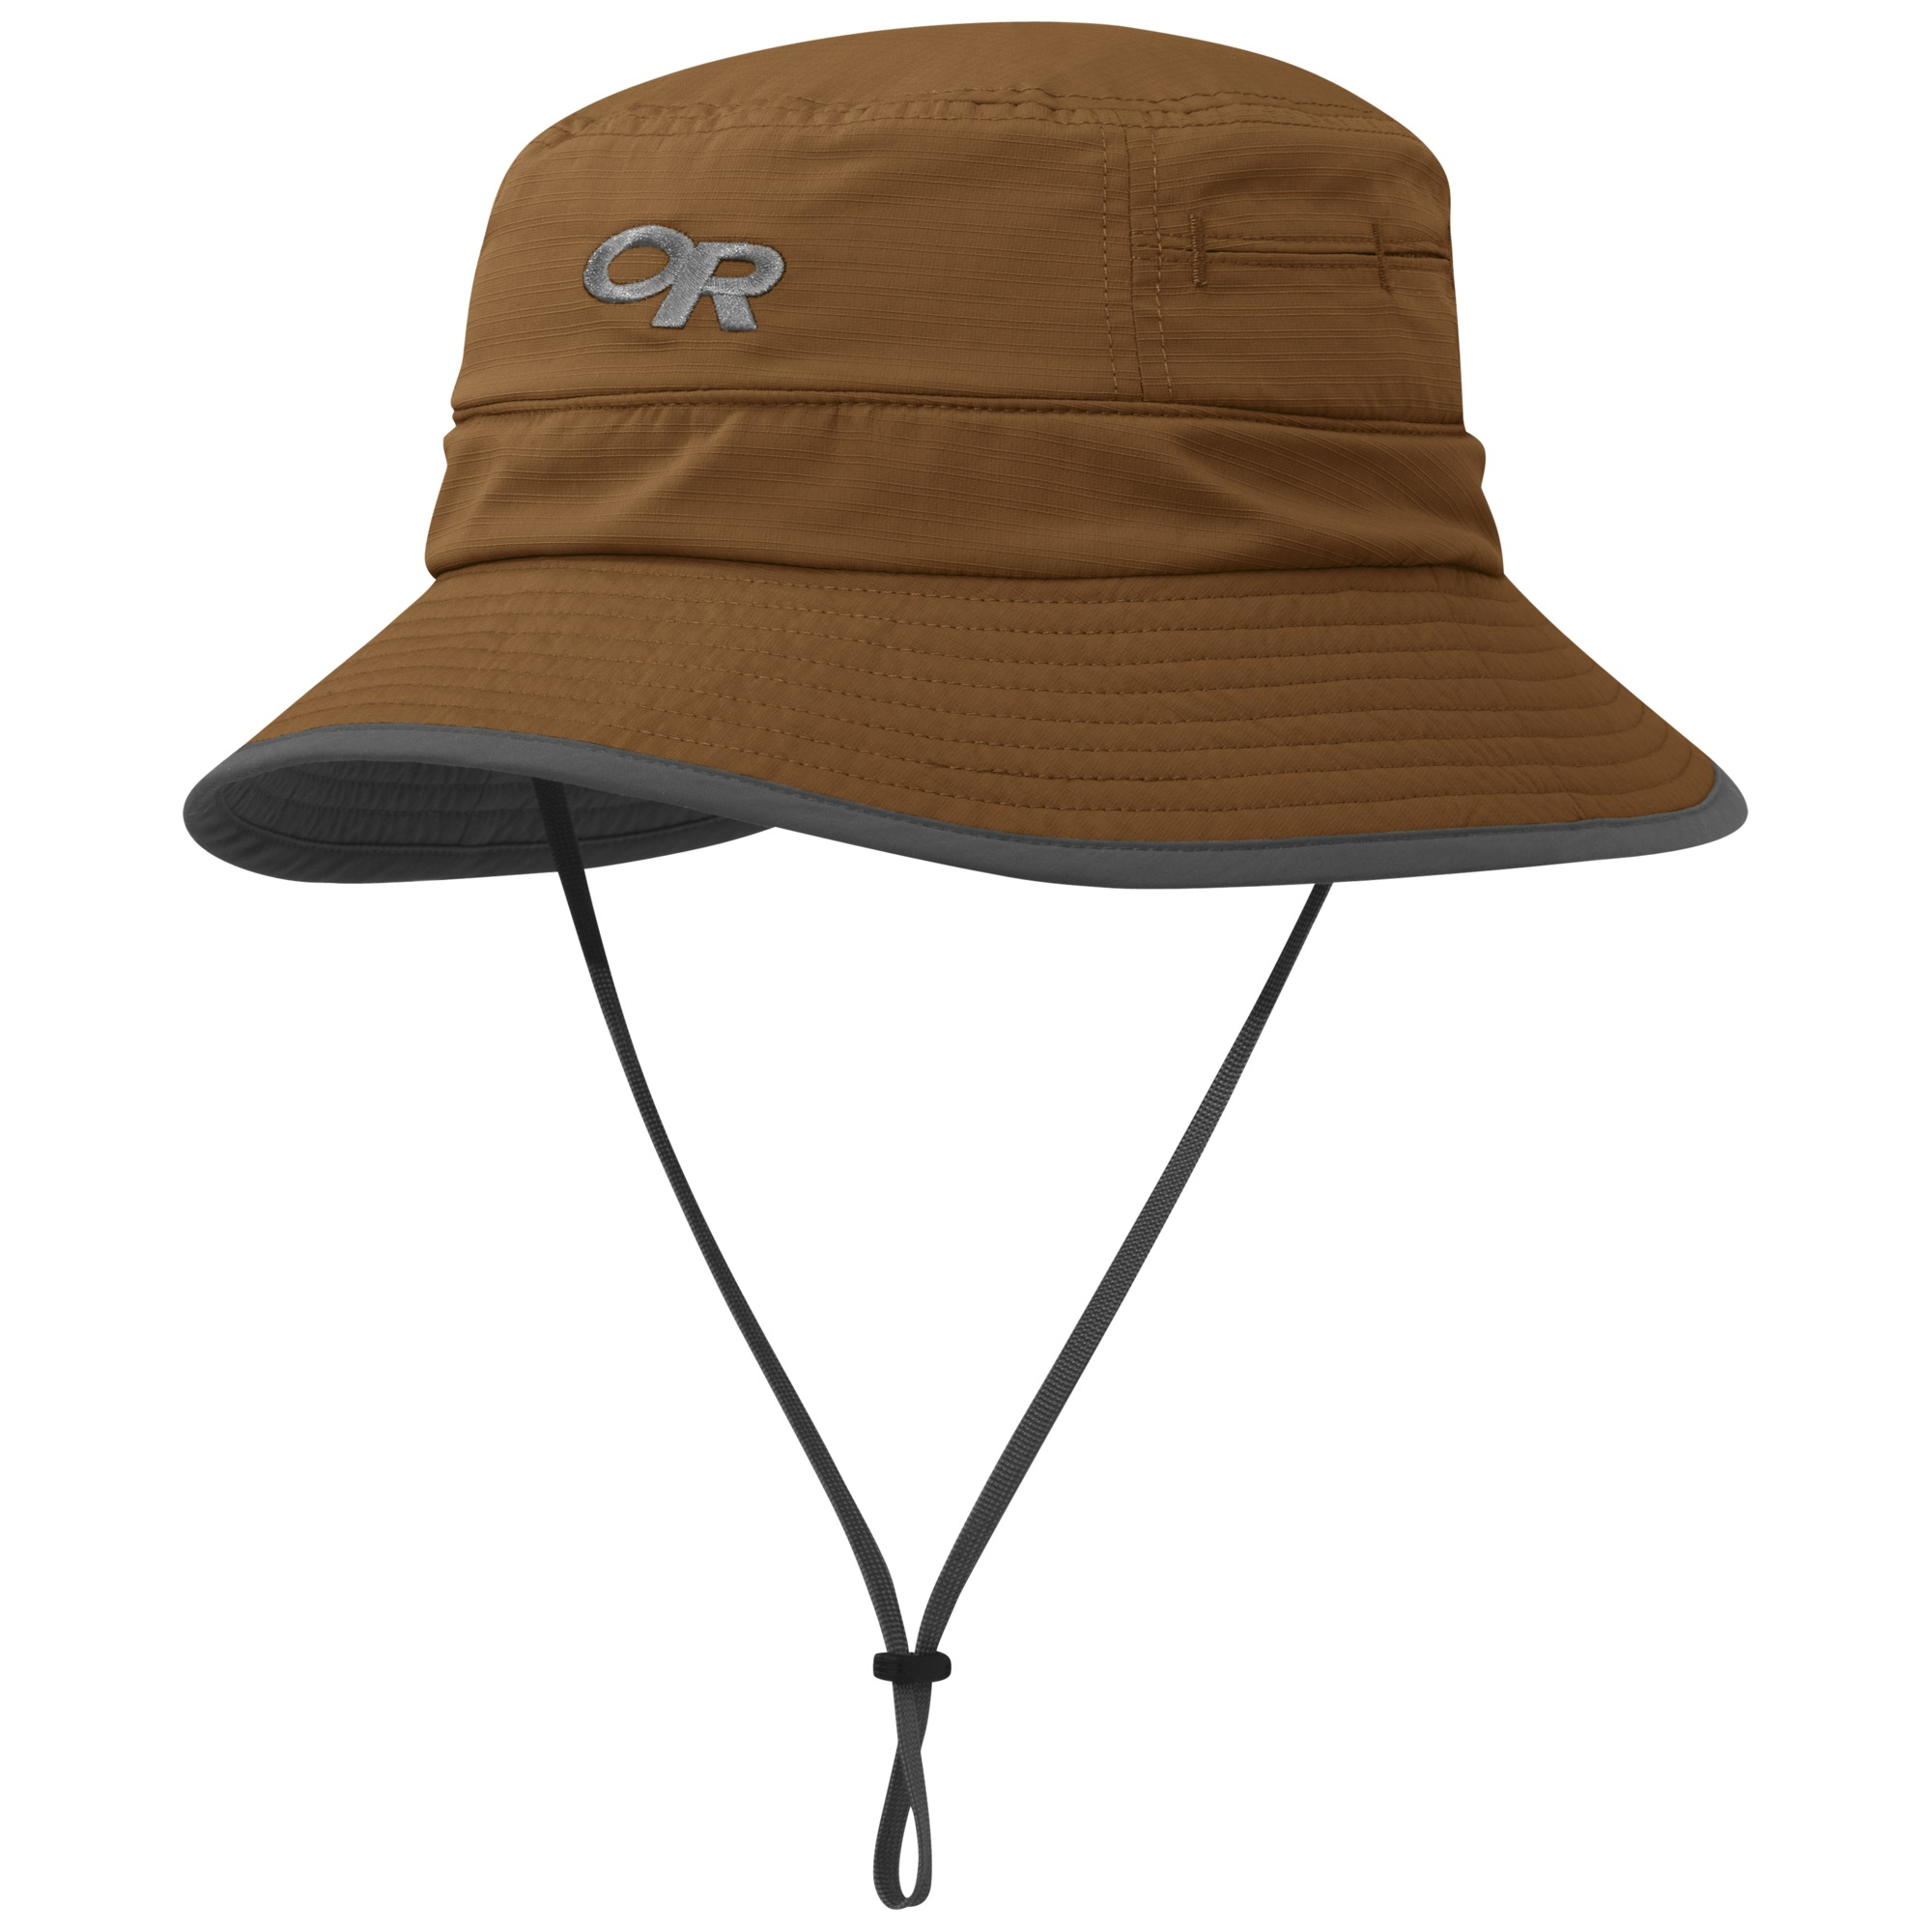 e9edd0033bf Outdoor Research Sombriolet Sun Bucket Hat — 36 models